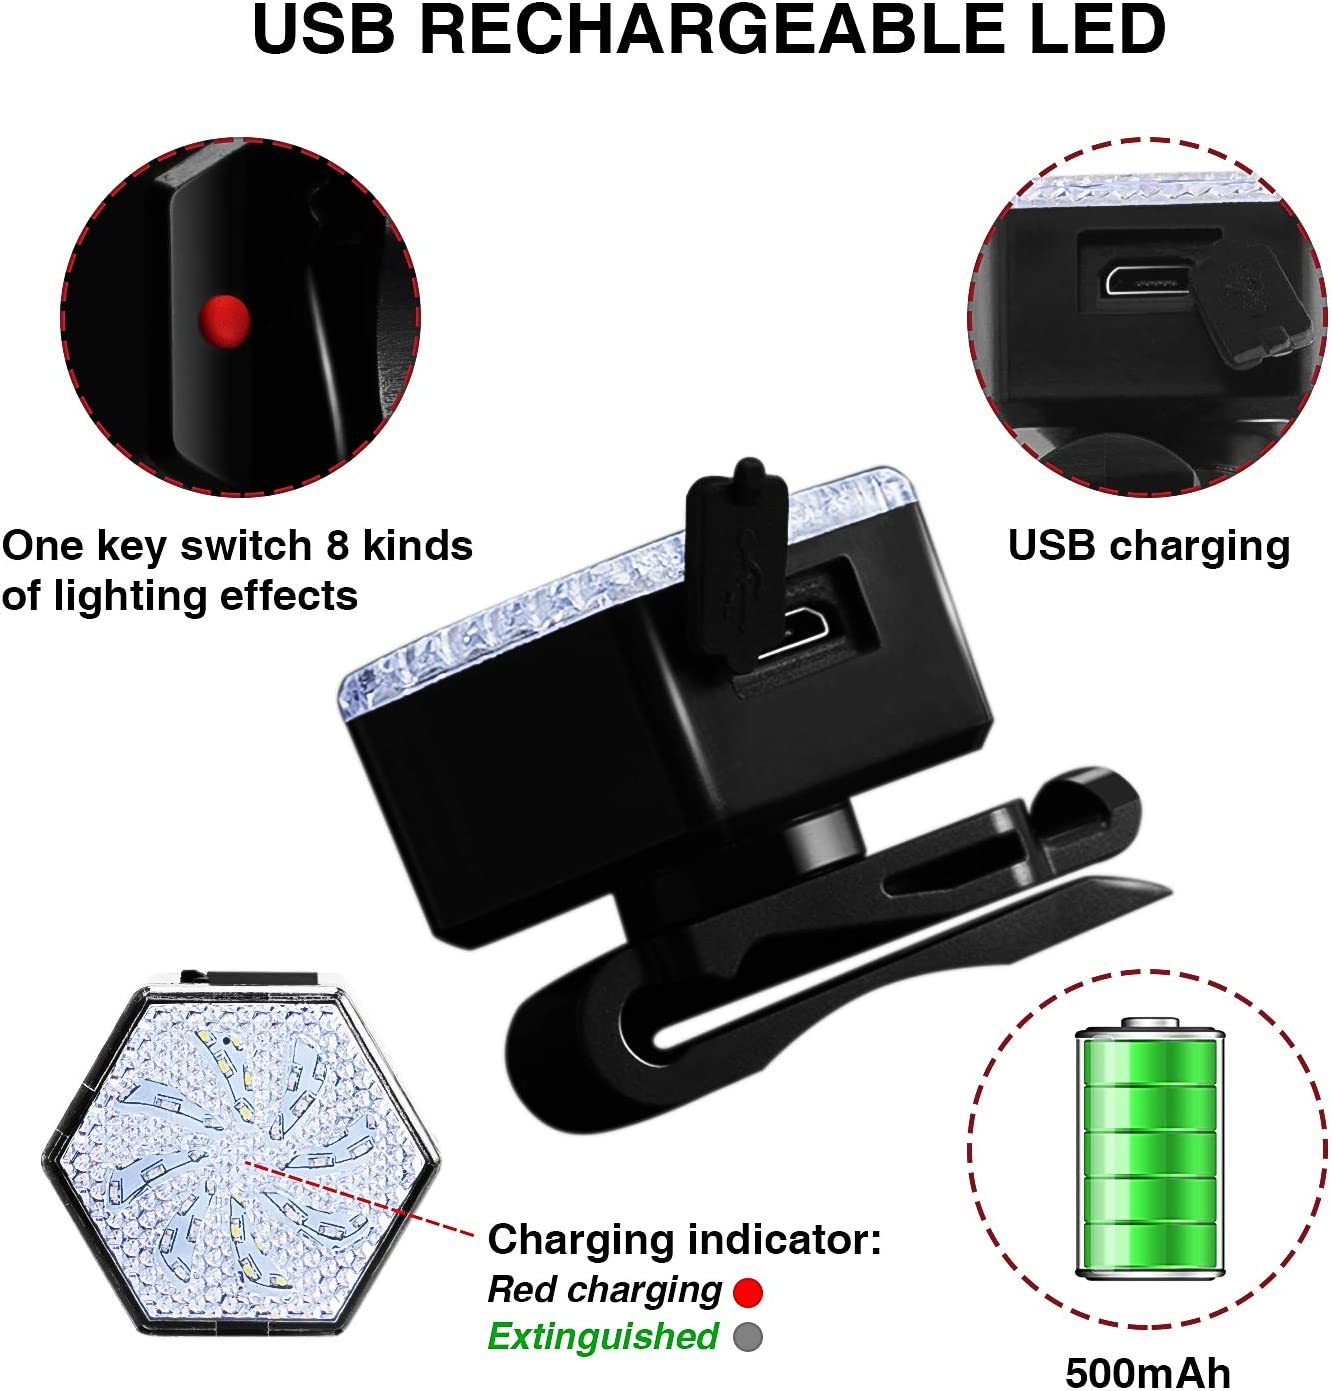 USB Rechargeable Windmill Bicycle Light Front and Back Combo Camping Yofidra Led Bike Light Set Outdoor IPX4 Waterproof /& 8 Light Modes Windmill Style Cycle Lights Perfect for Cycling